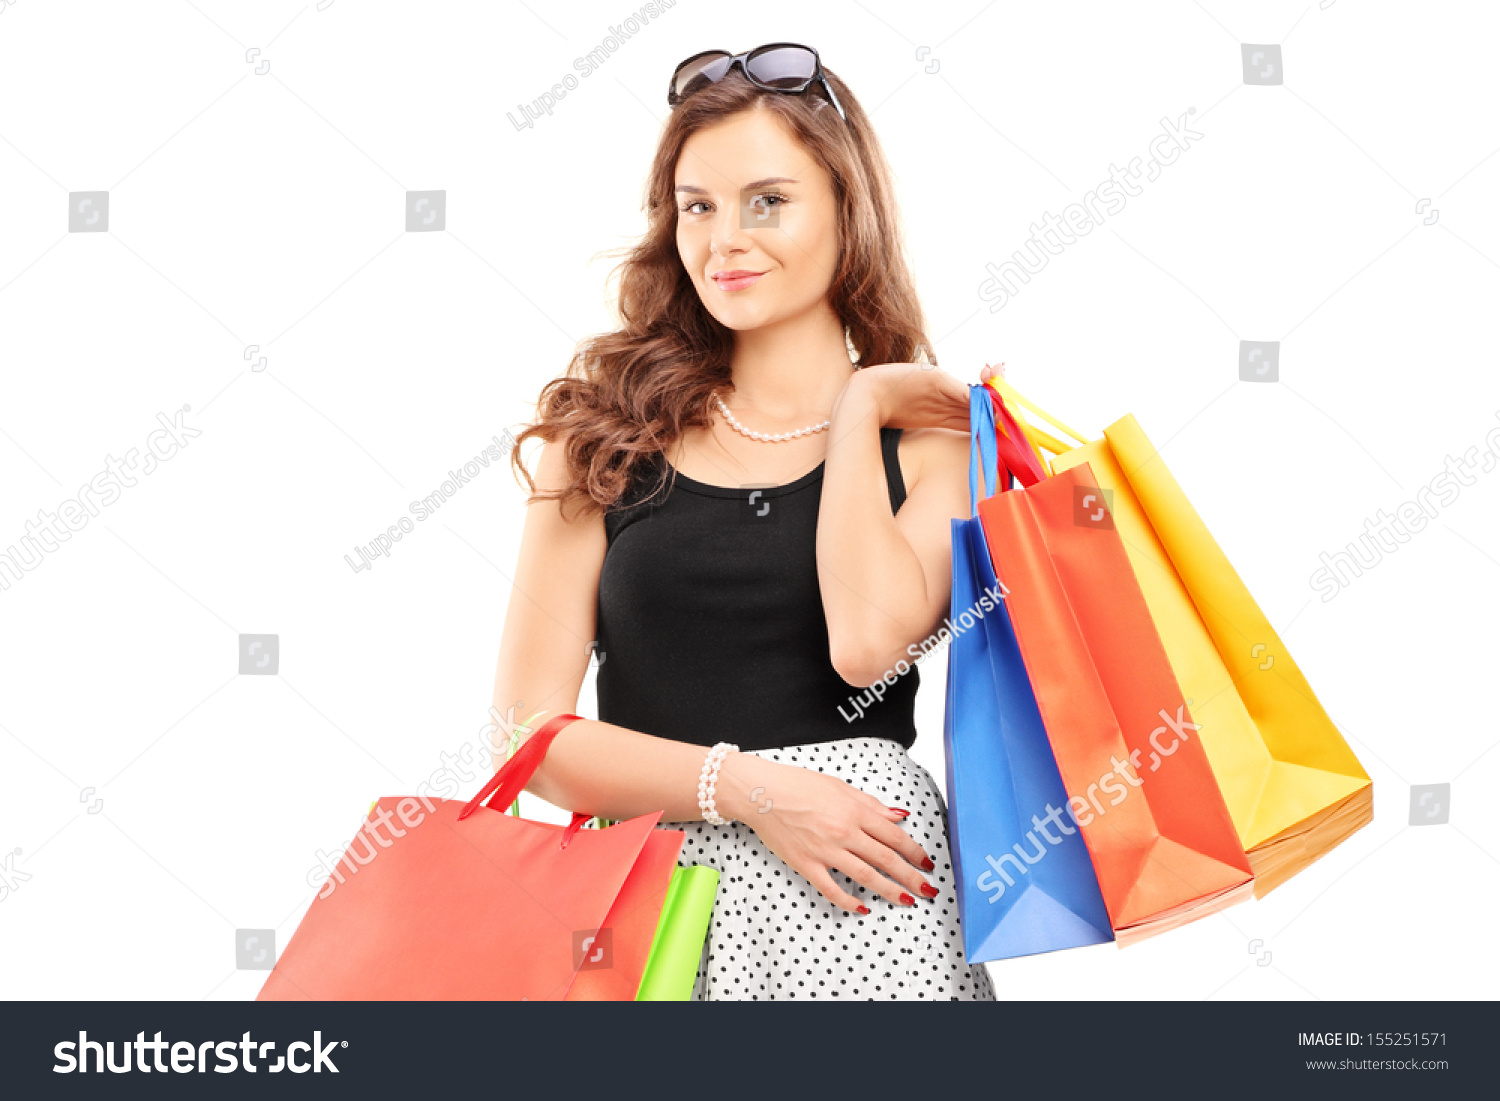 Woman posing with shopping bags isolated on white background full - Attractive Young Woman Posing With Shopping Bags Isolated On White Background